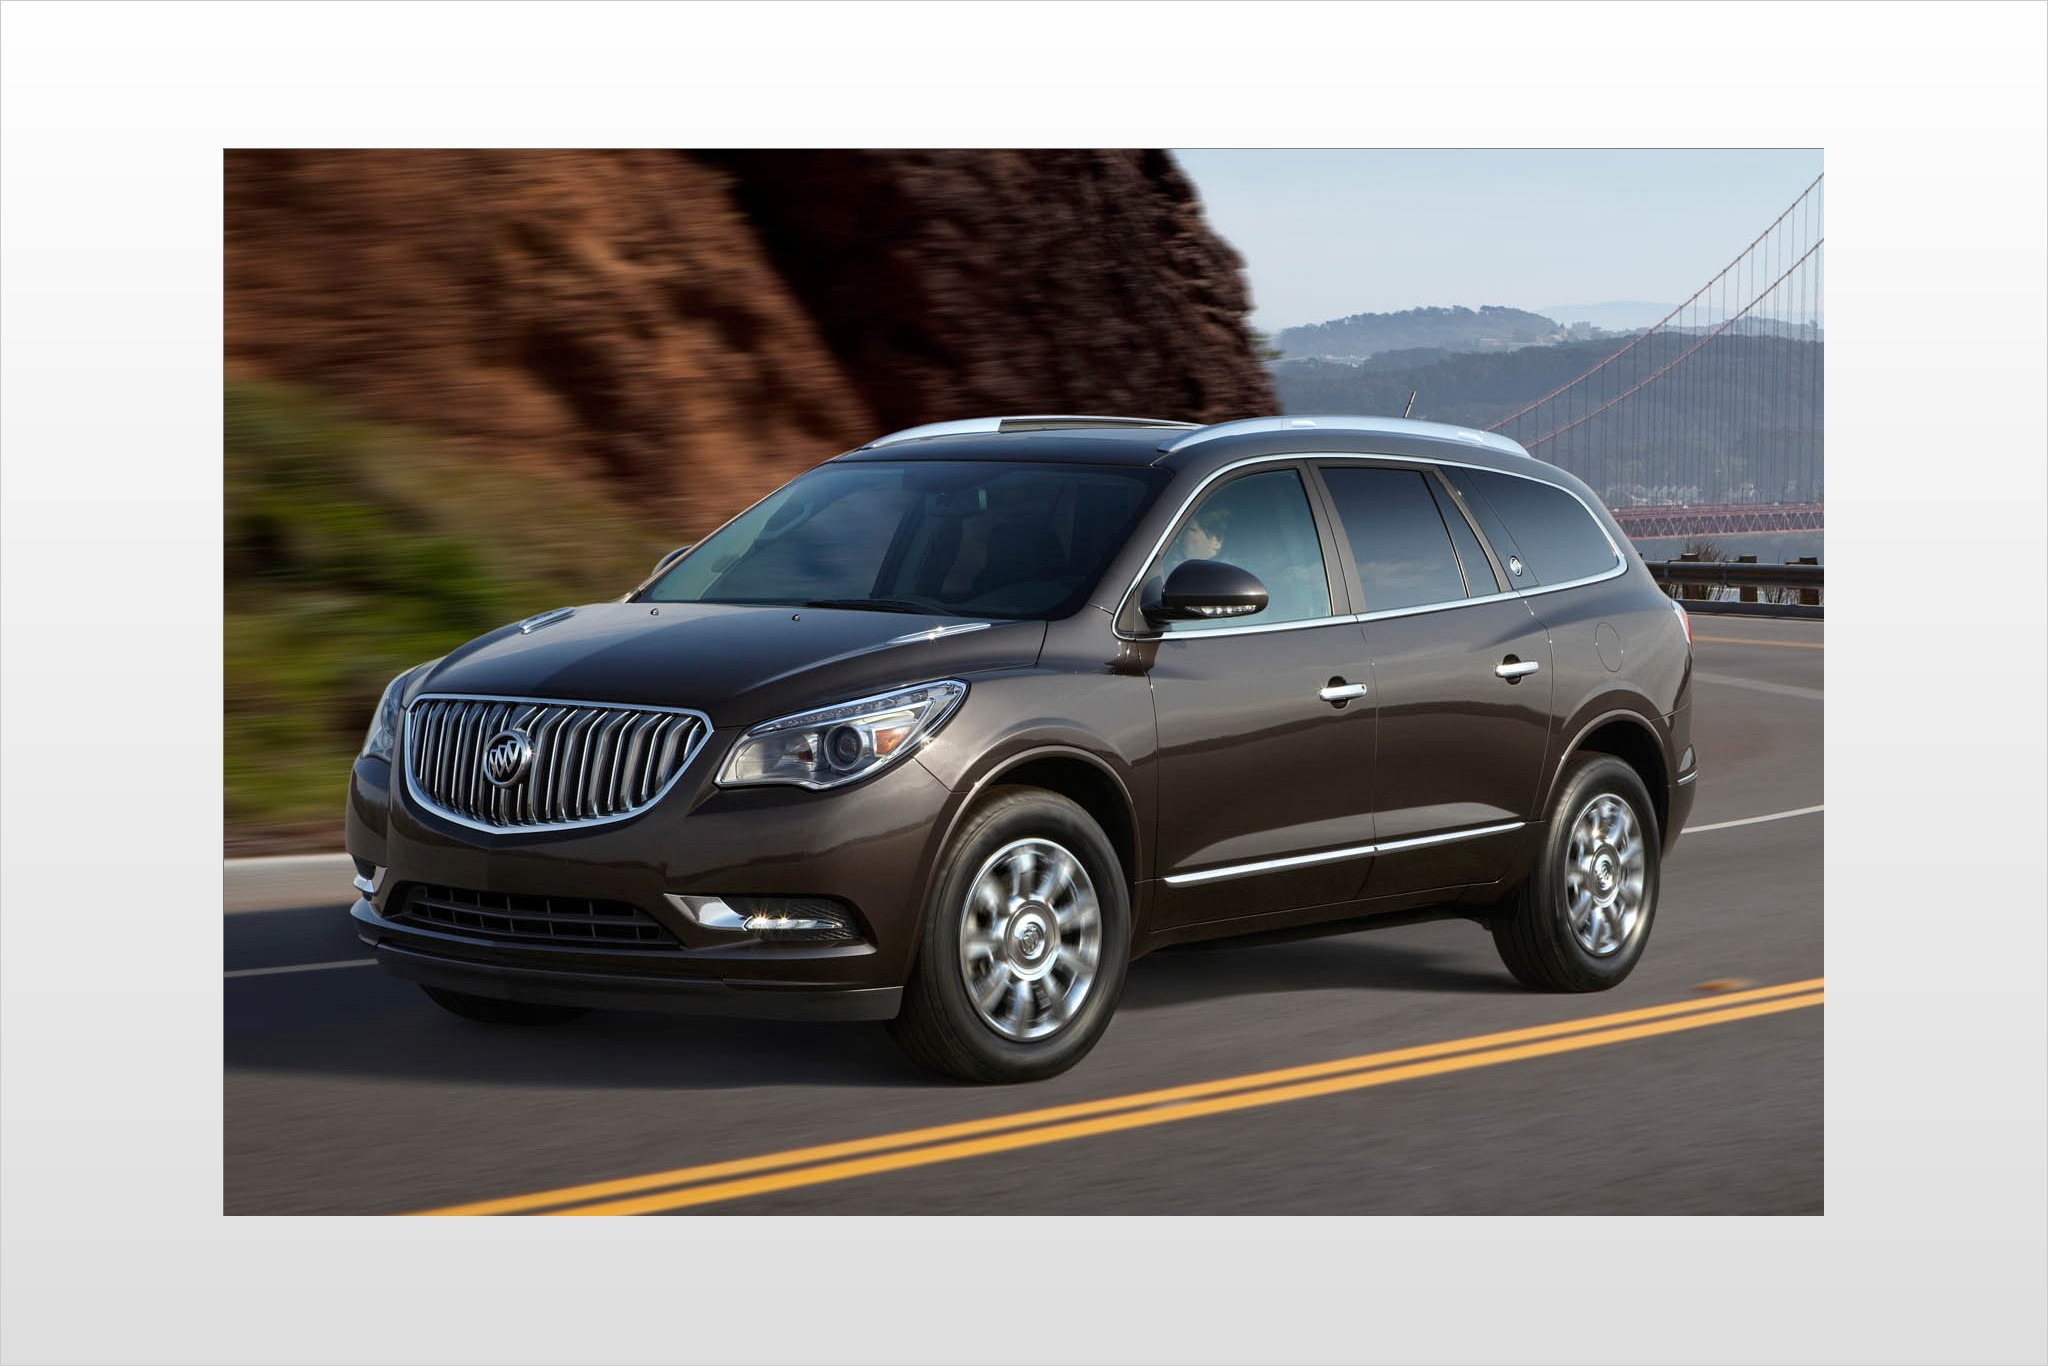 Buick Suv Images | 2017, 2018, 2019 Ford Price, Release ...